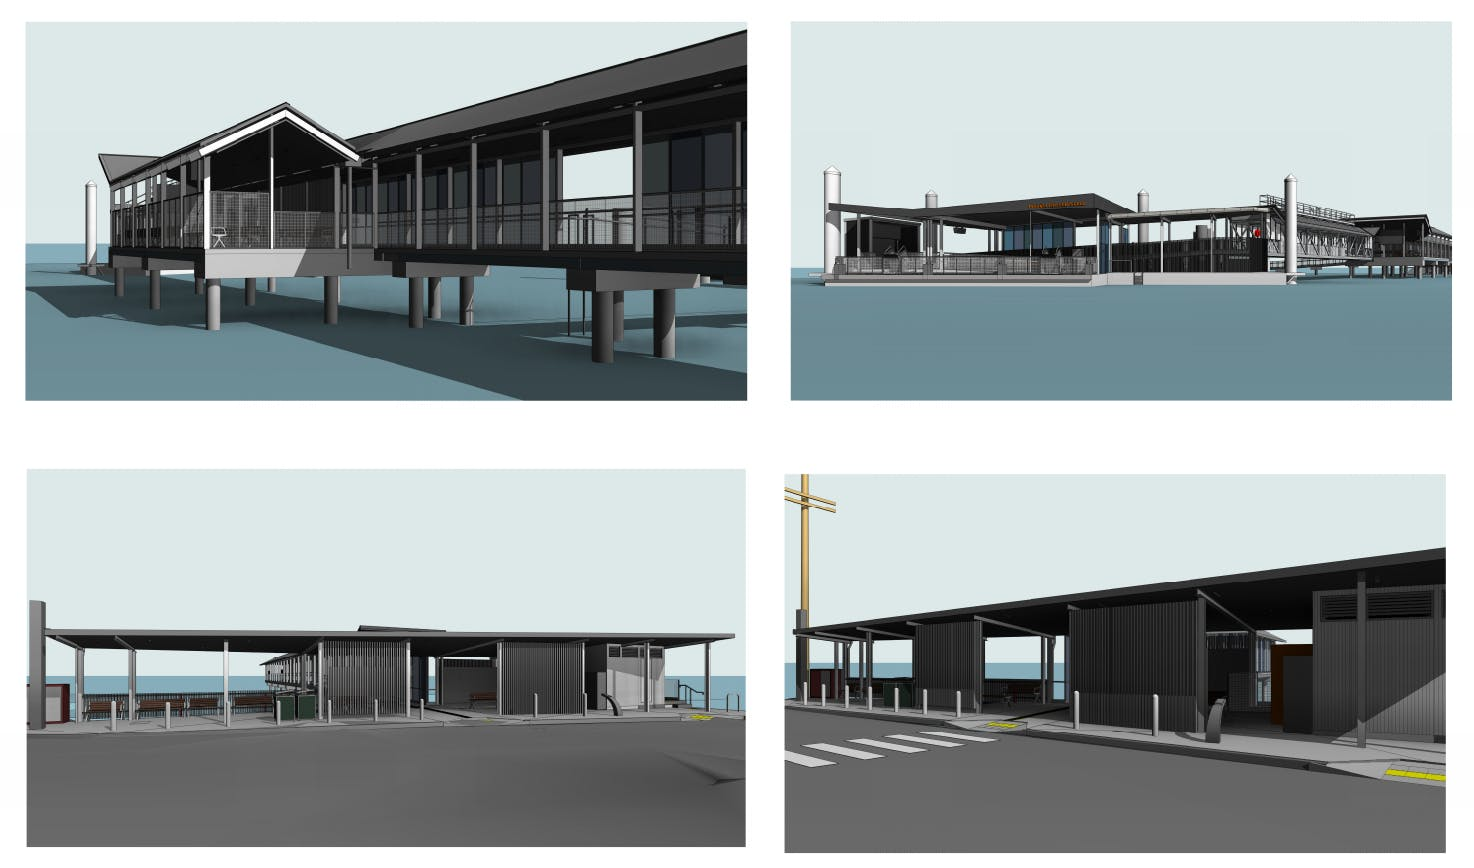 3D images of the future Russell Island ferry terminal